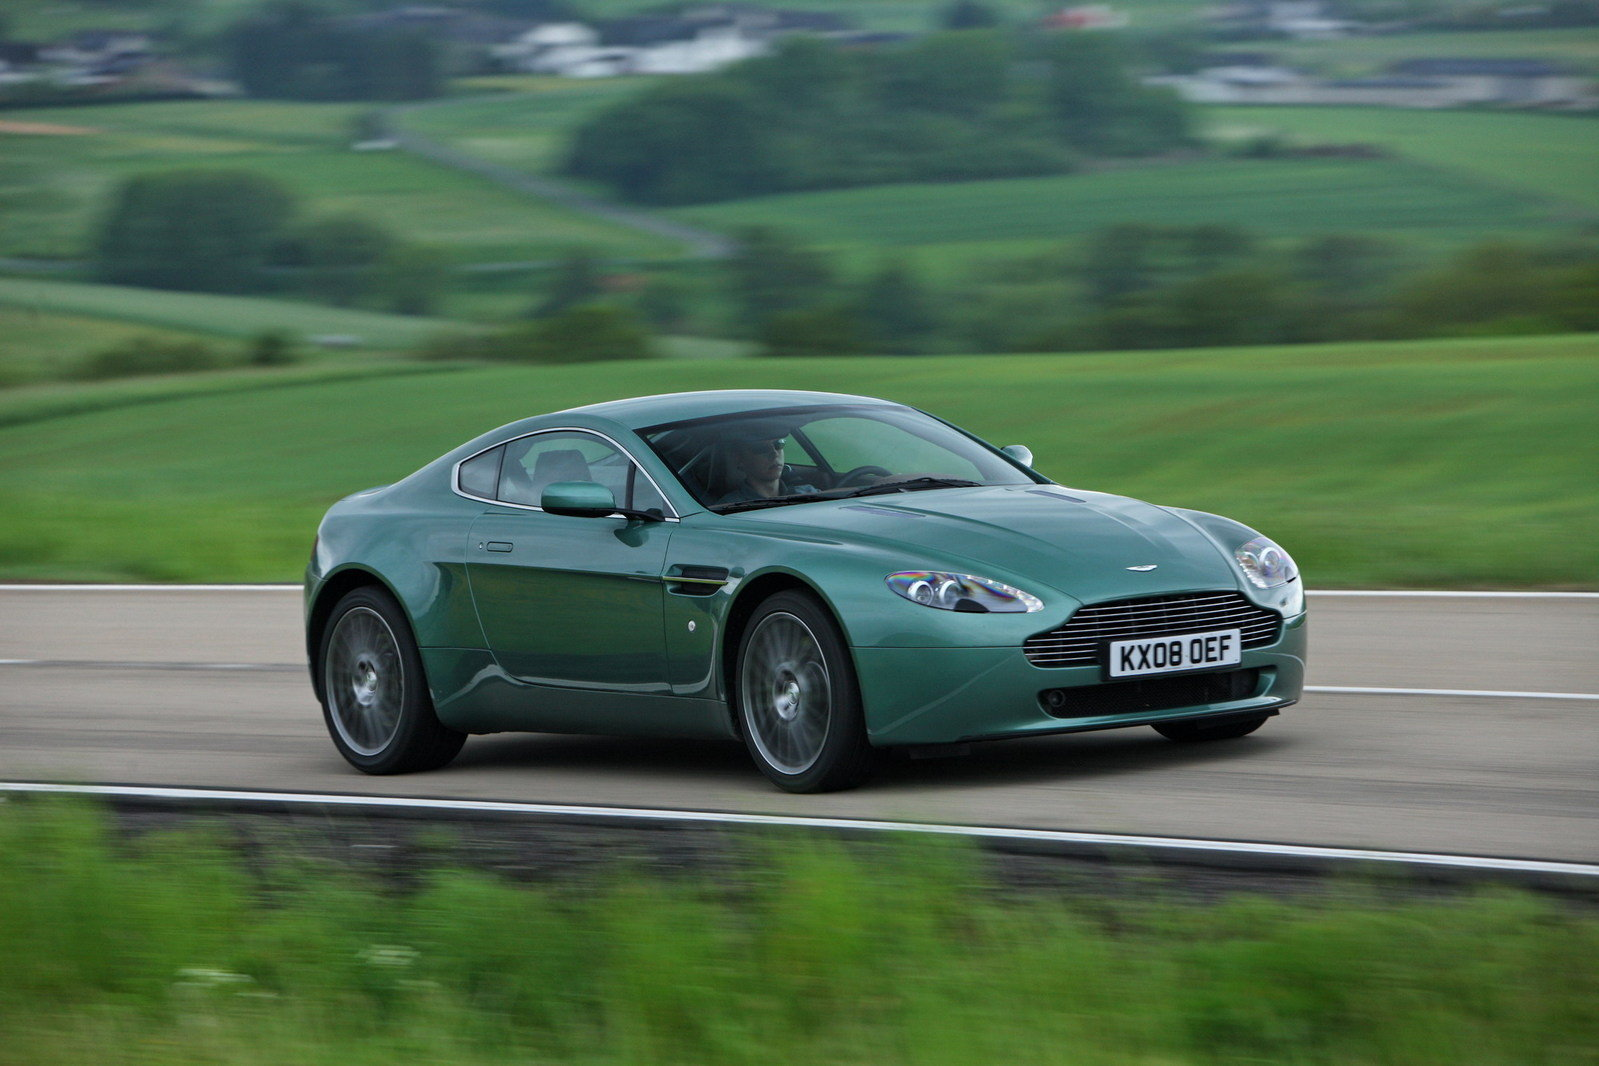 2010 aston martin v8 vantage picture 367703 car review top speed. Black Bedroom Furniture Sets. Home Design Ideas